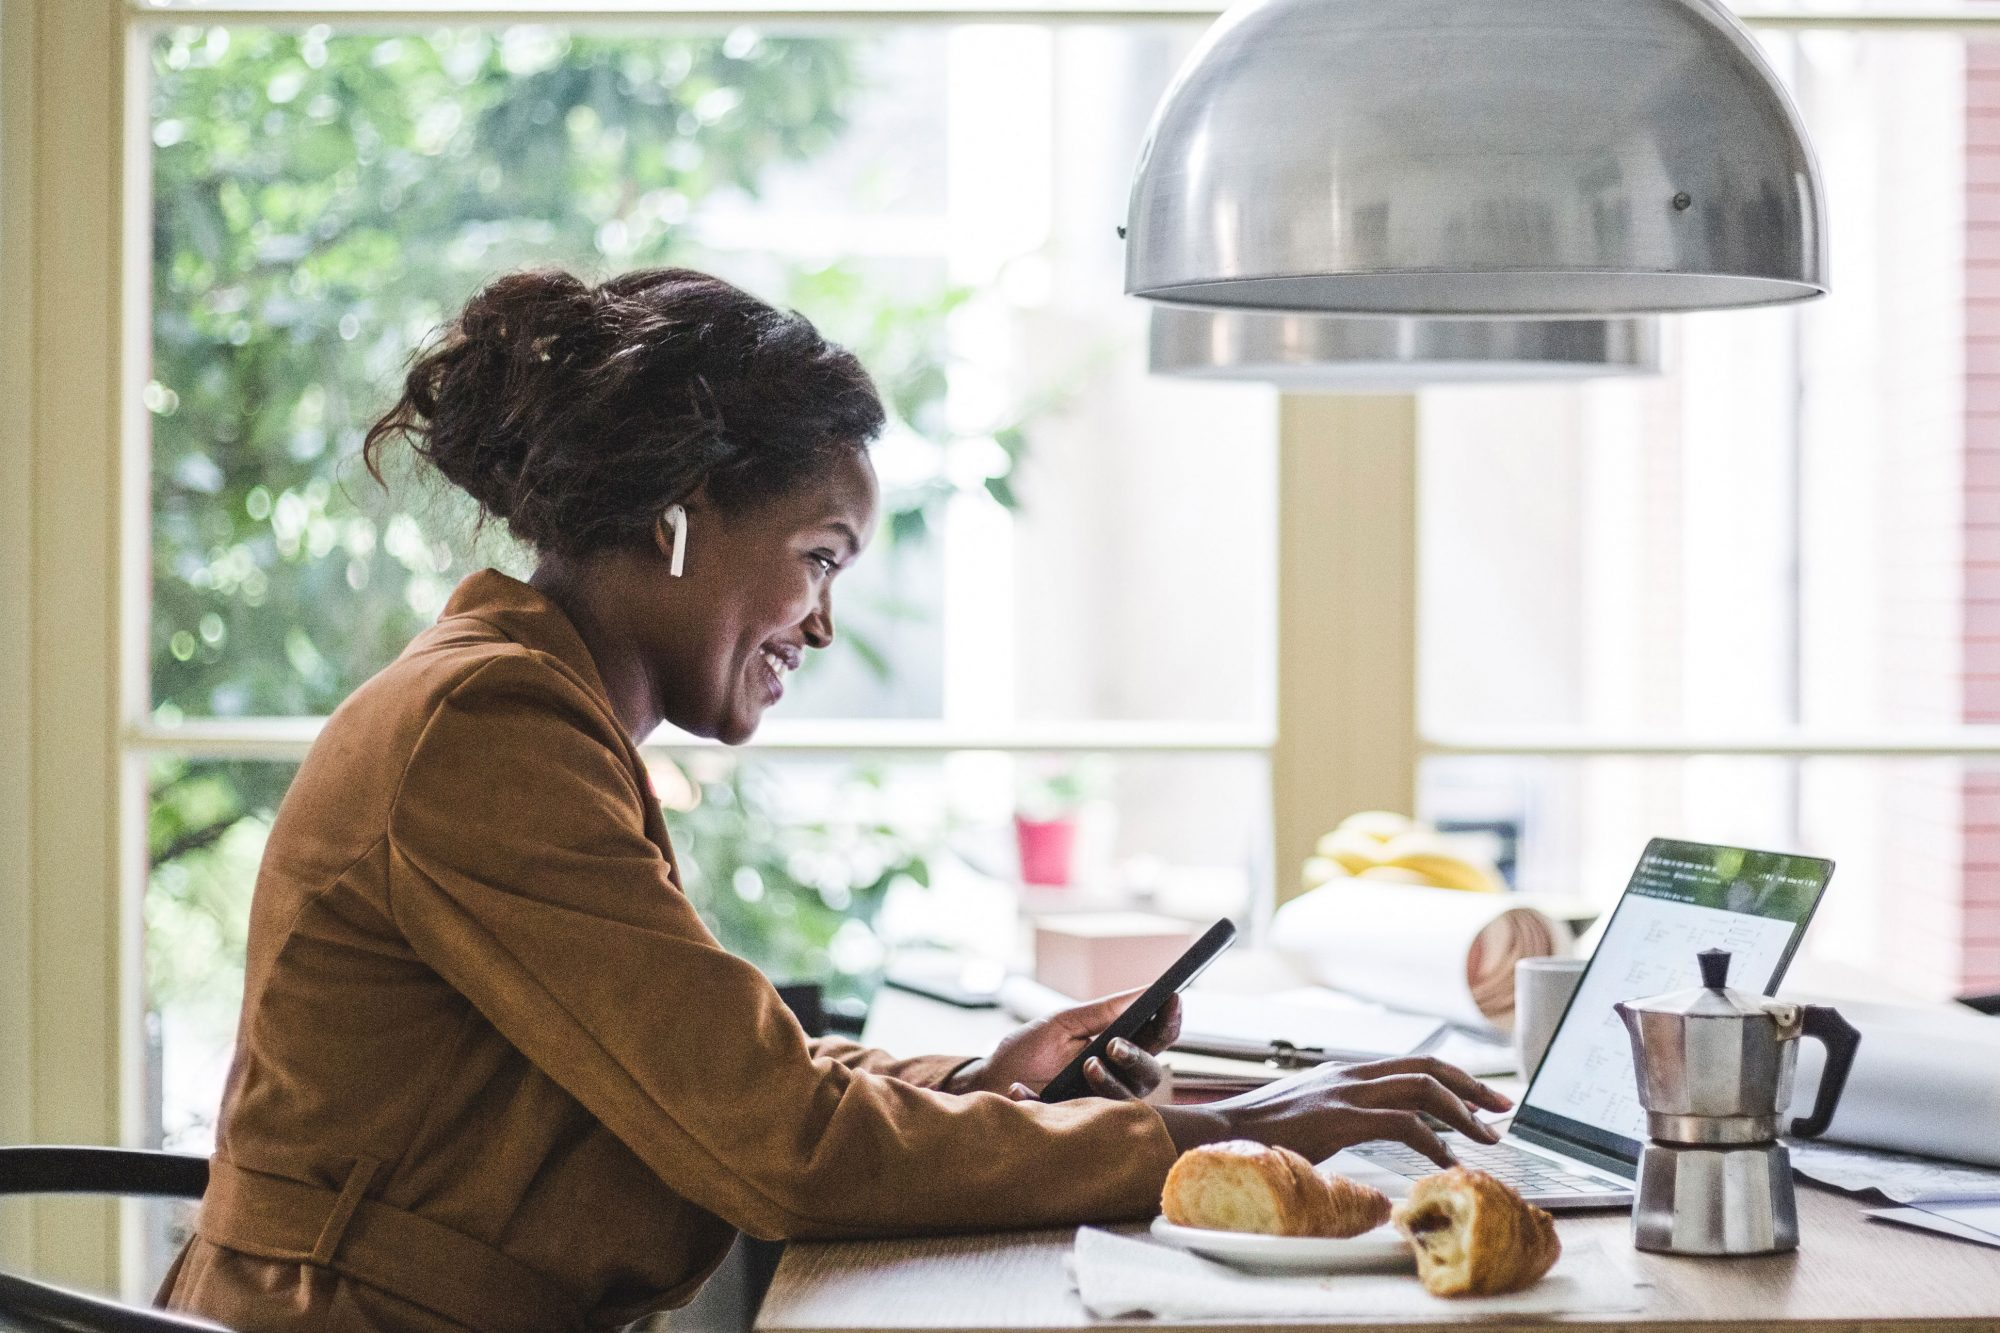 woman smiling working from home wearing earbuds